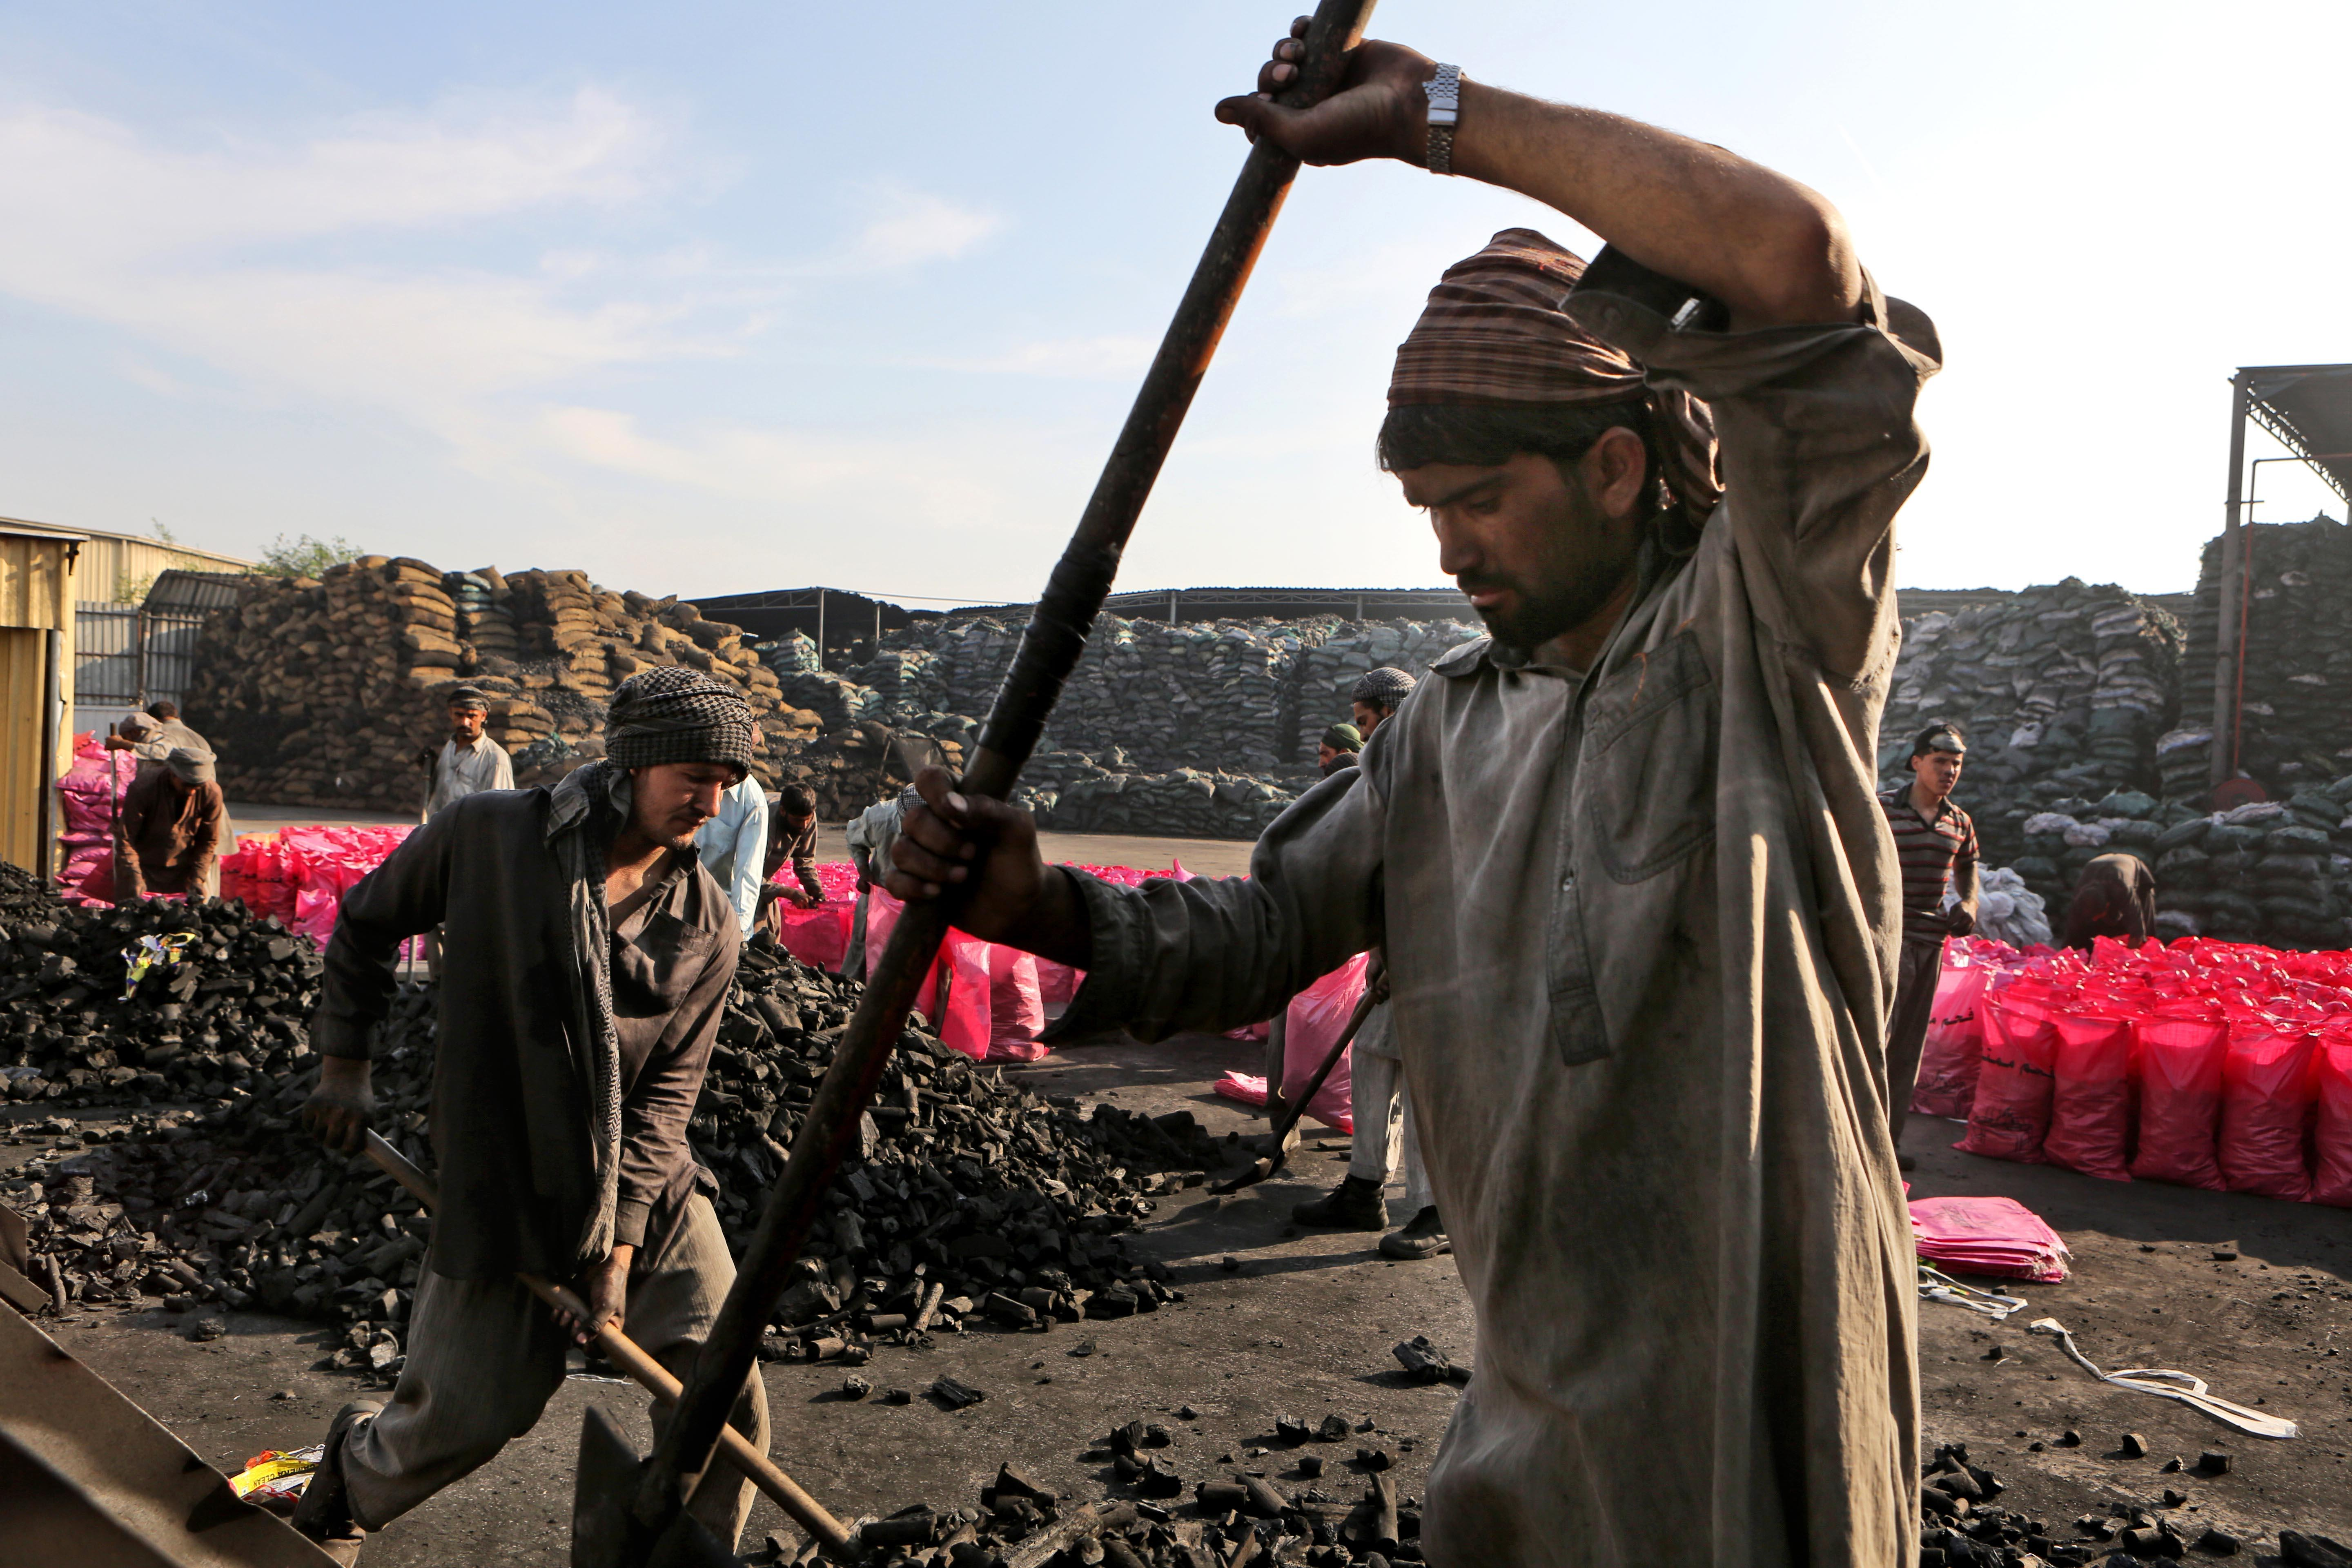 Banned Somali charcoal still finds ways into Gulf